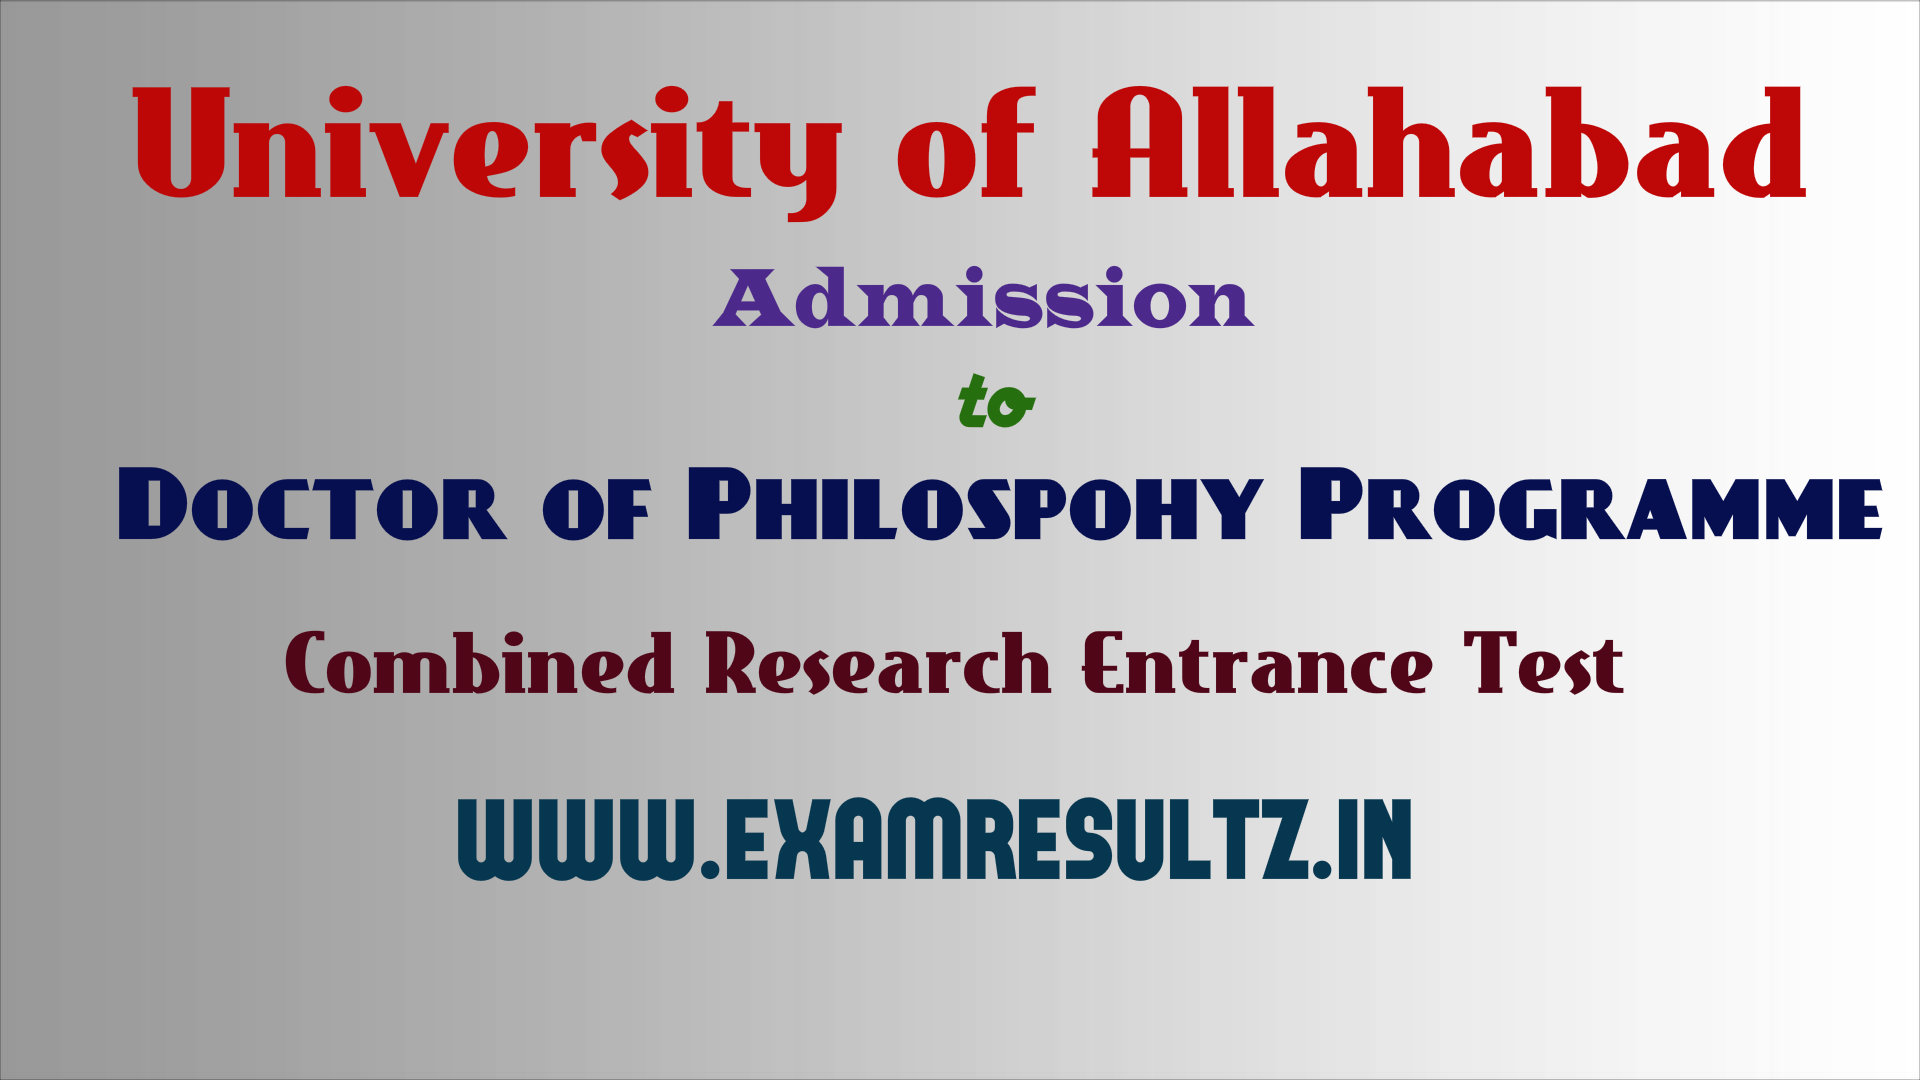 allahabad university cret 2015 online application form